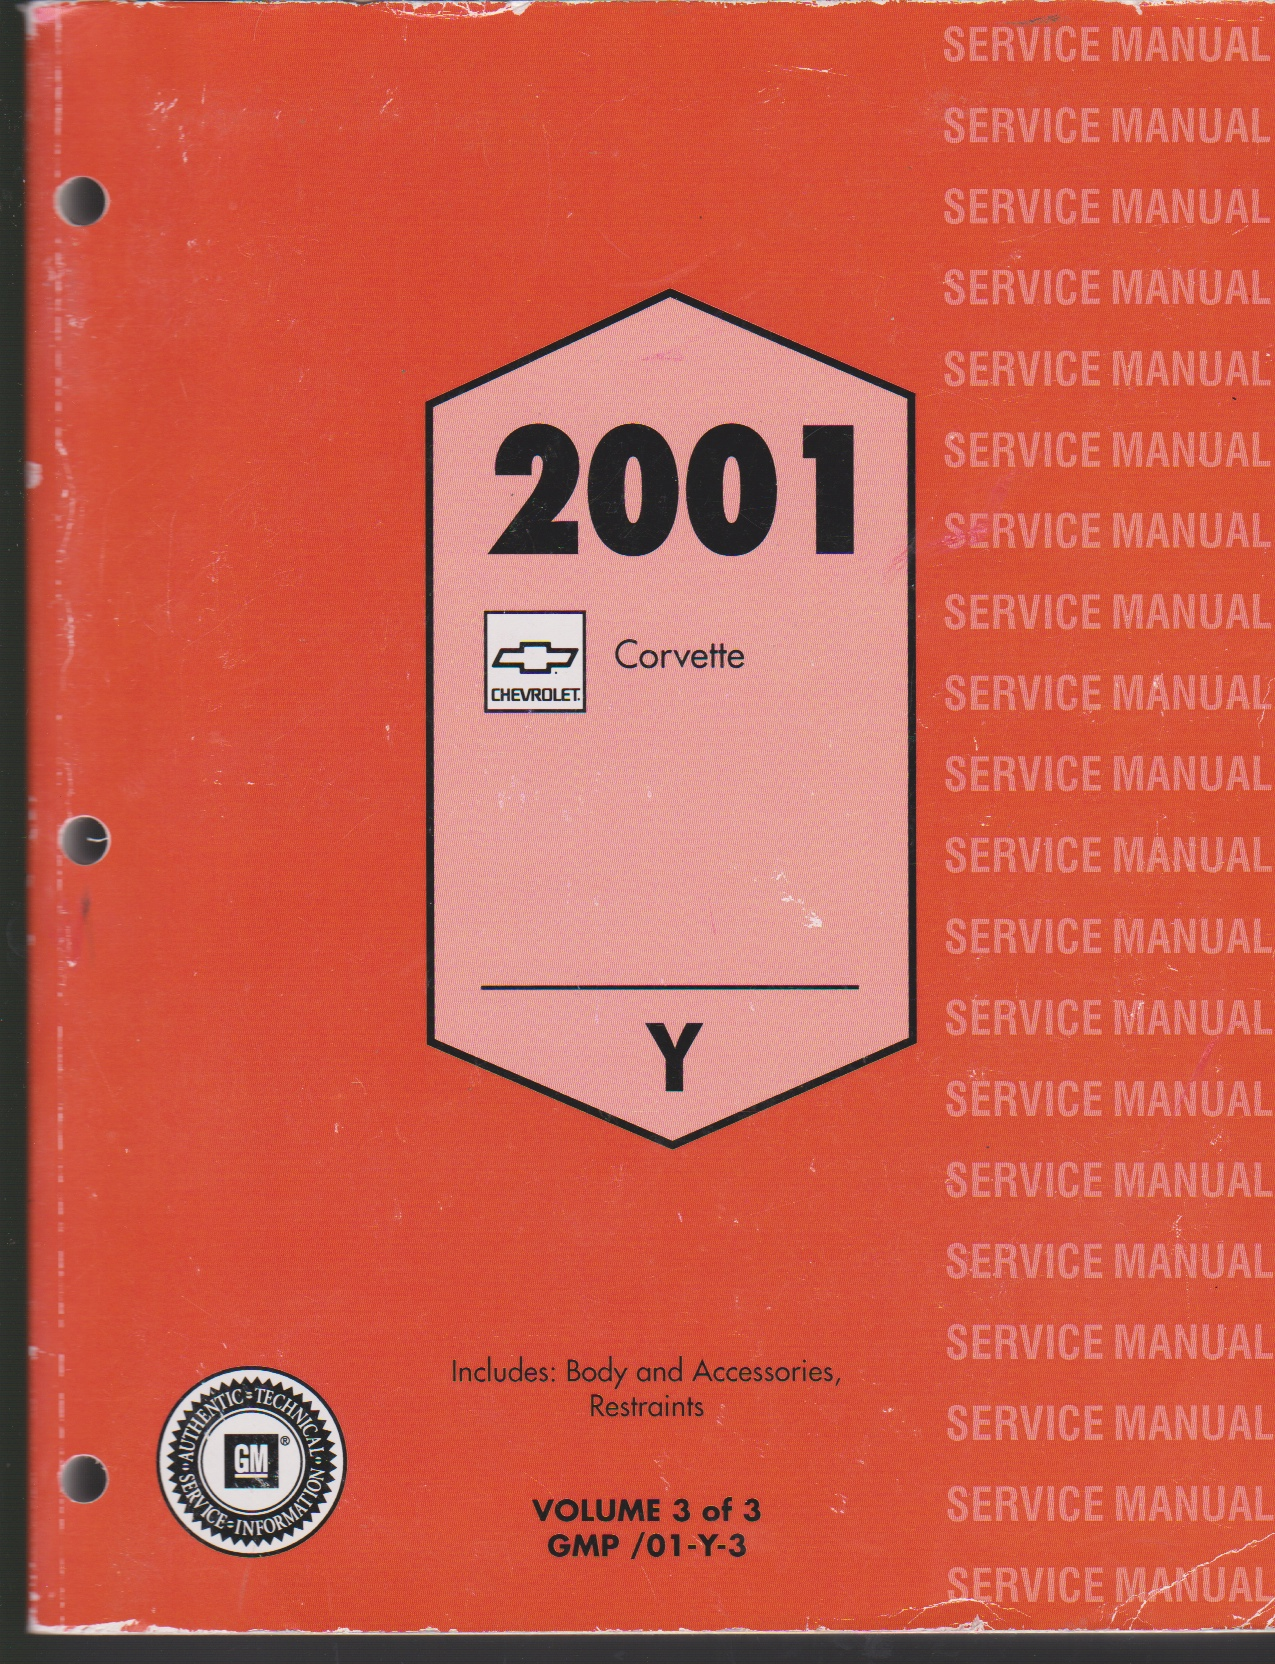 Image for 2001 CHEVROLET CORVETTE SERVICE MANUAL. VOLUME 3. INCLUDES BODY AND ACCESSORIES, RESTRAINTS